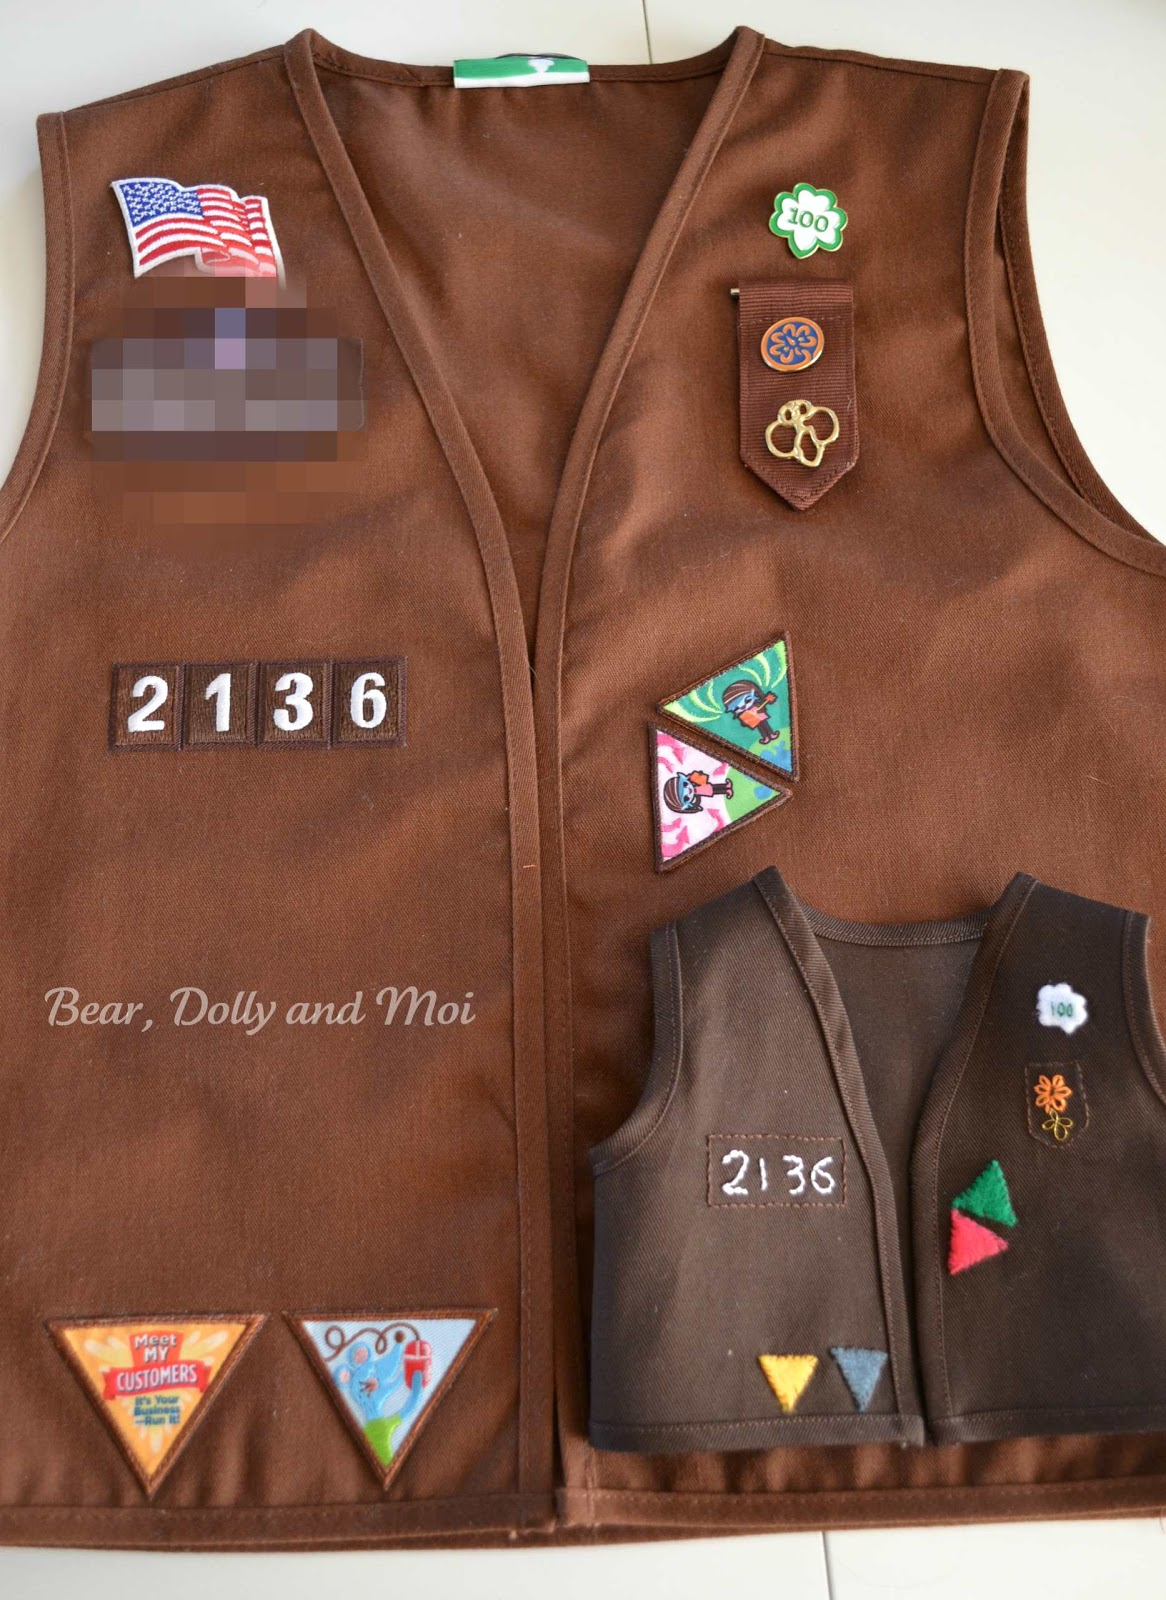 Worksheet Brownie Vests bear dolly and moi doll brownie vest after the vests were made i decorated them to resemble miss c s own vest